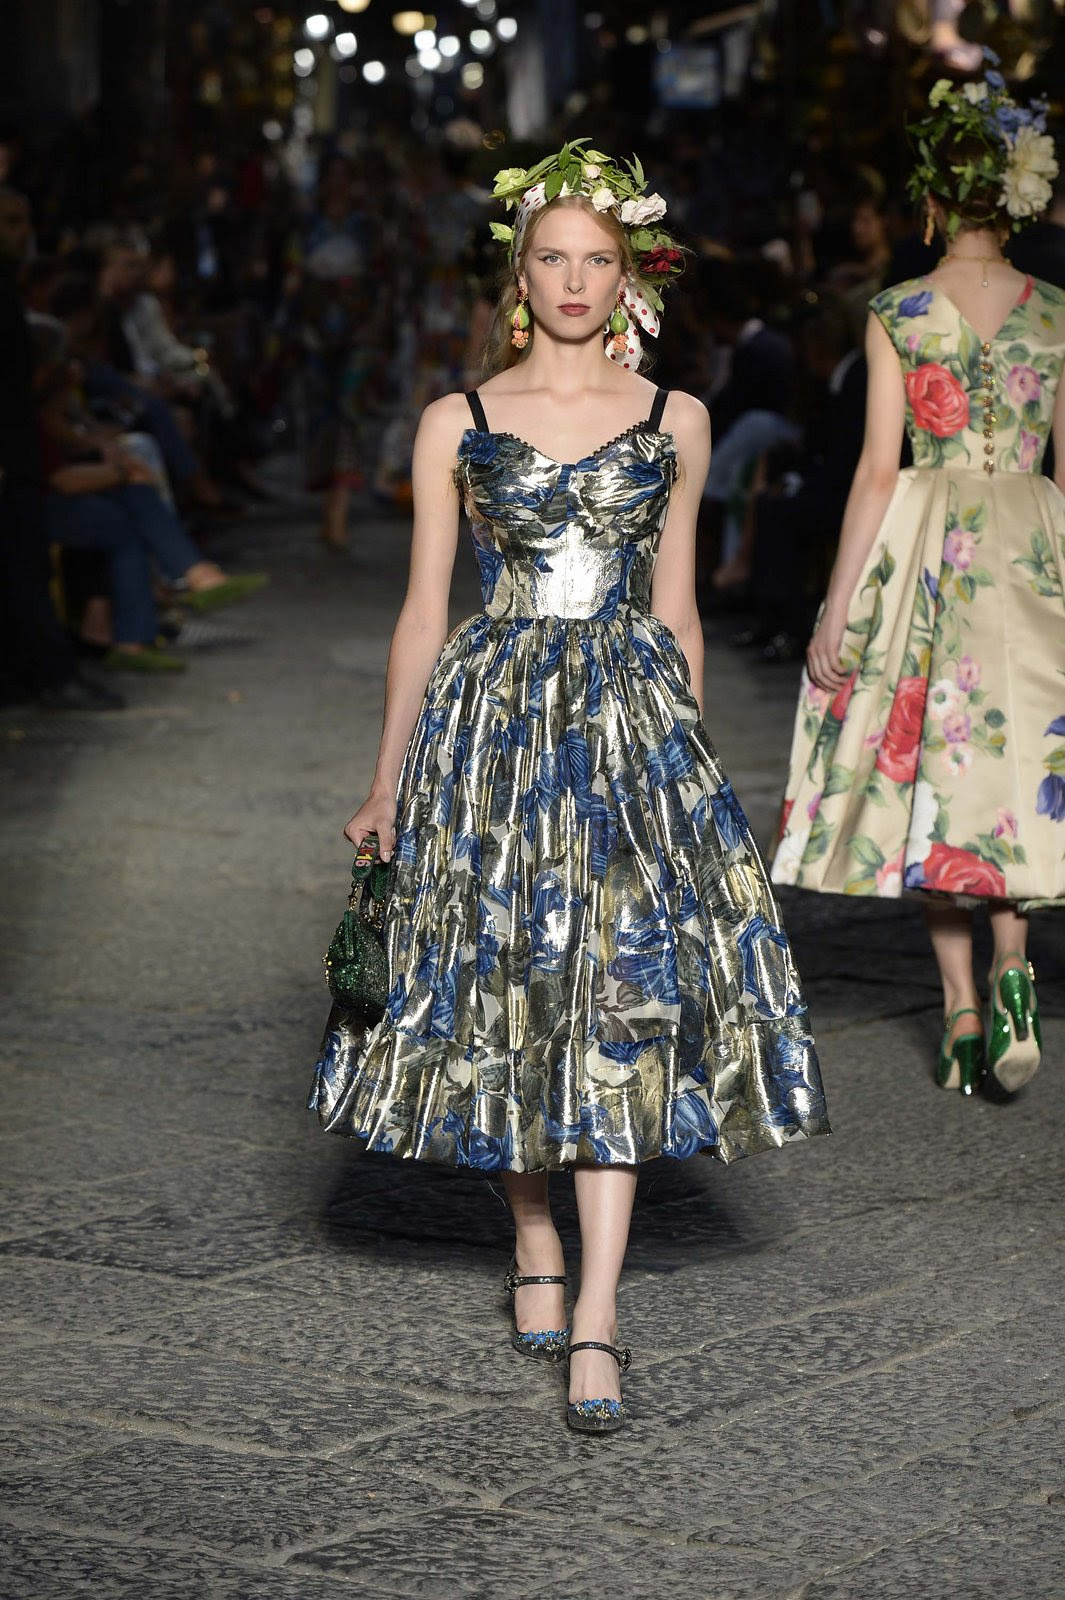 http://media.vogue.com/r/h_1600,w_1240/2016/07/09/09-dolce-and-gabbana-alta-moda-2016.jpg